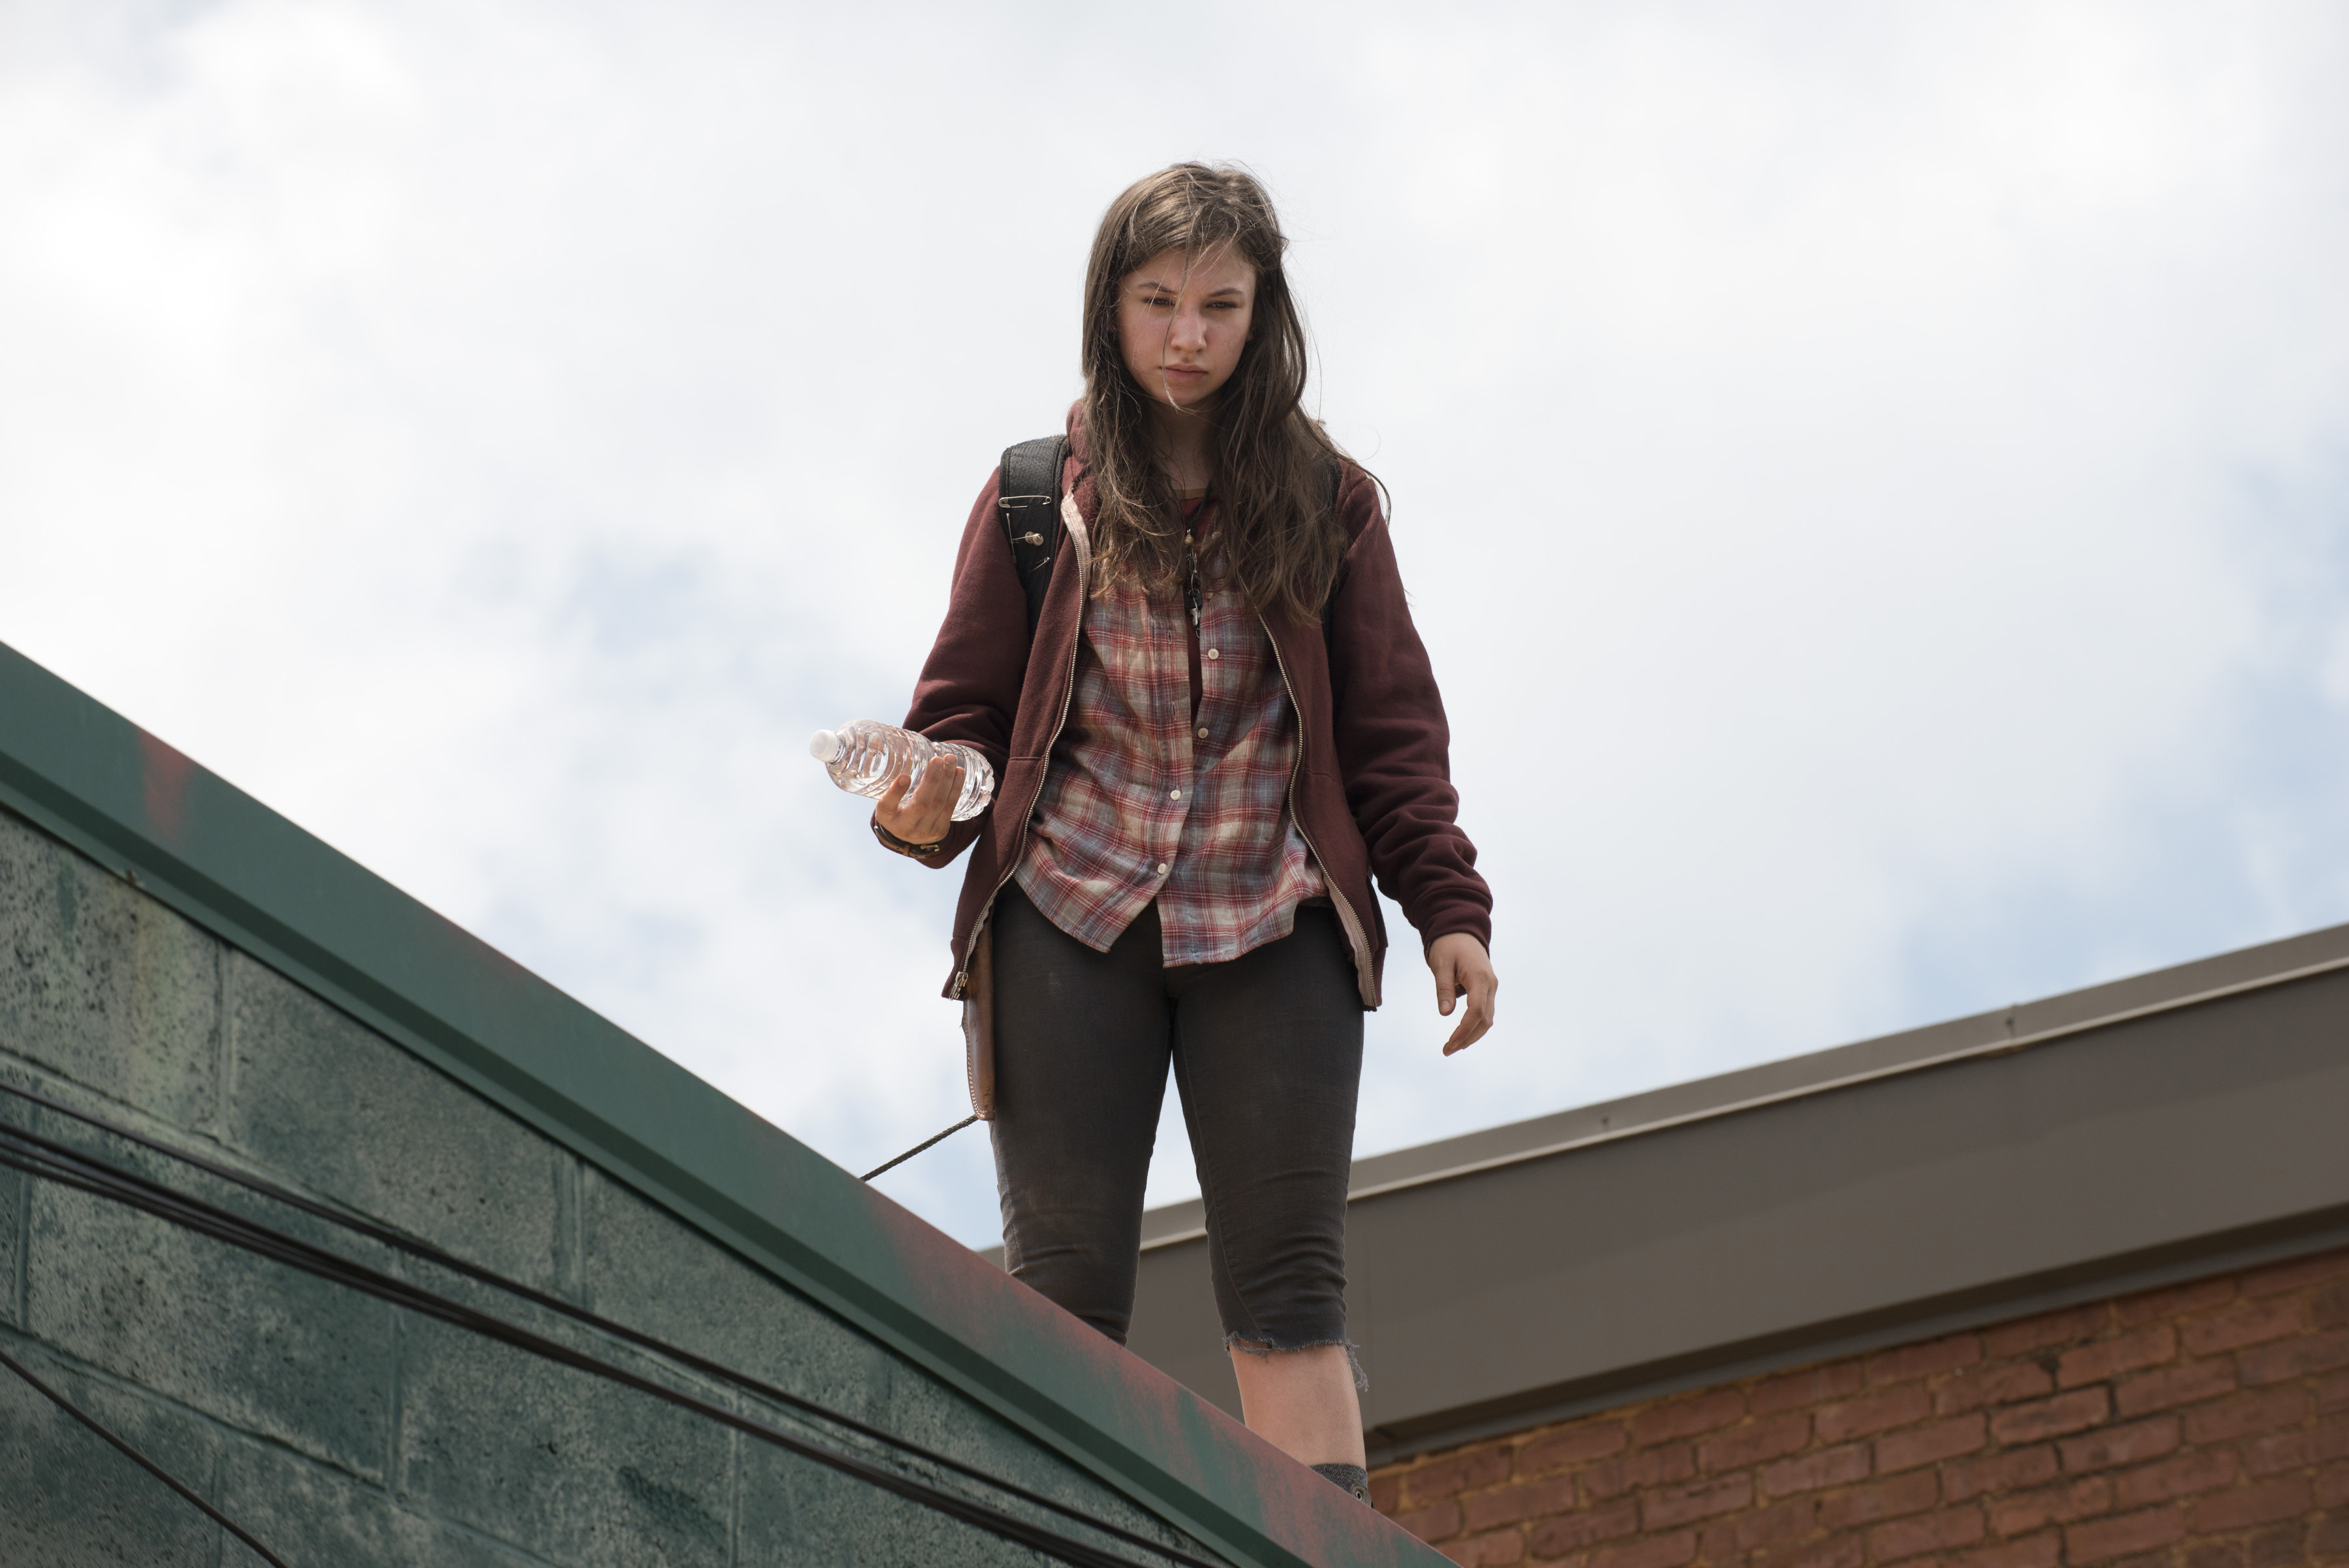 Enid Gives Water To Glenn From The Bakery | The Walking Dead Locations